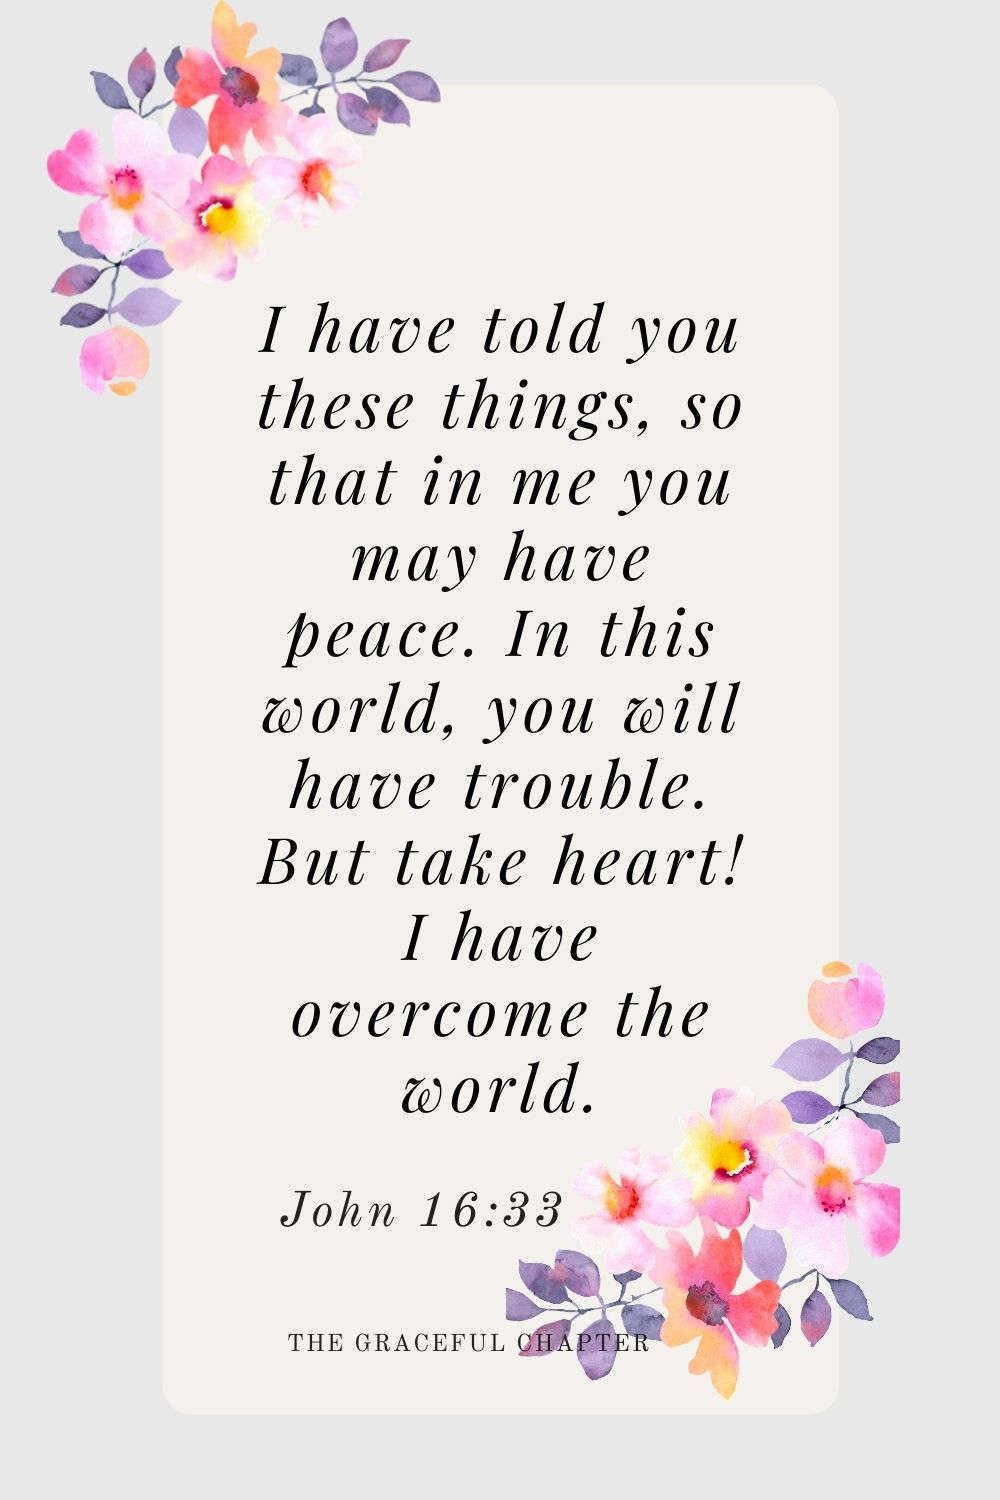 I have told you these things, so that in me you may have peace. In this world you will have trouble. But take heart! I have overcome the world. John 16:33